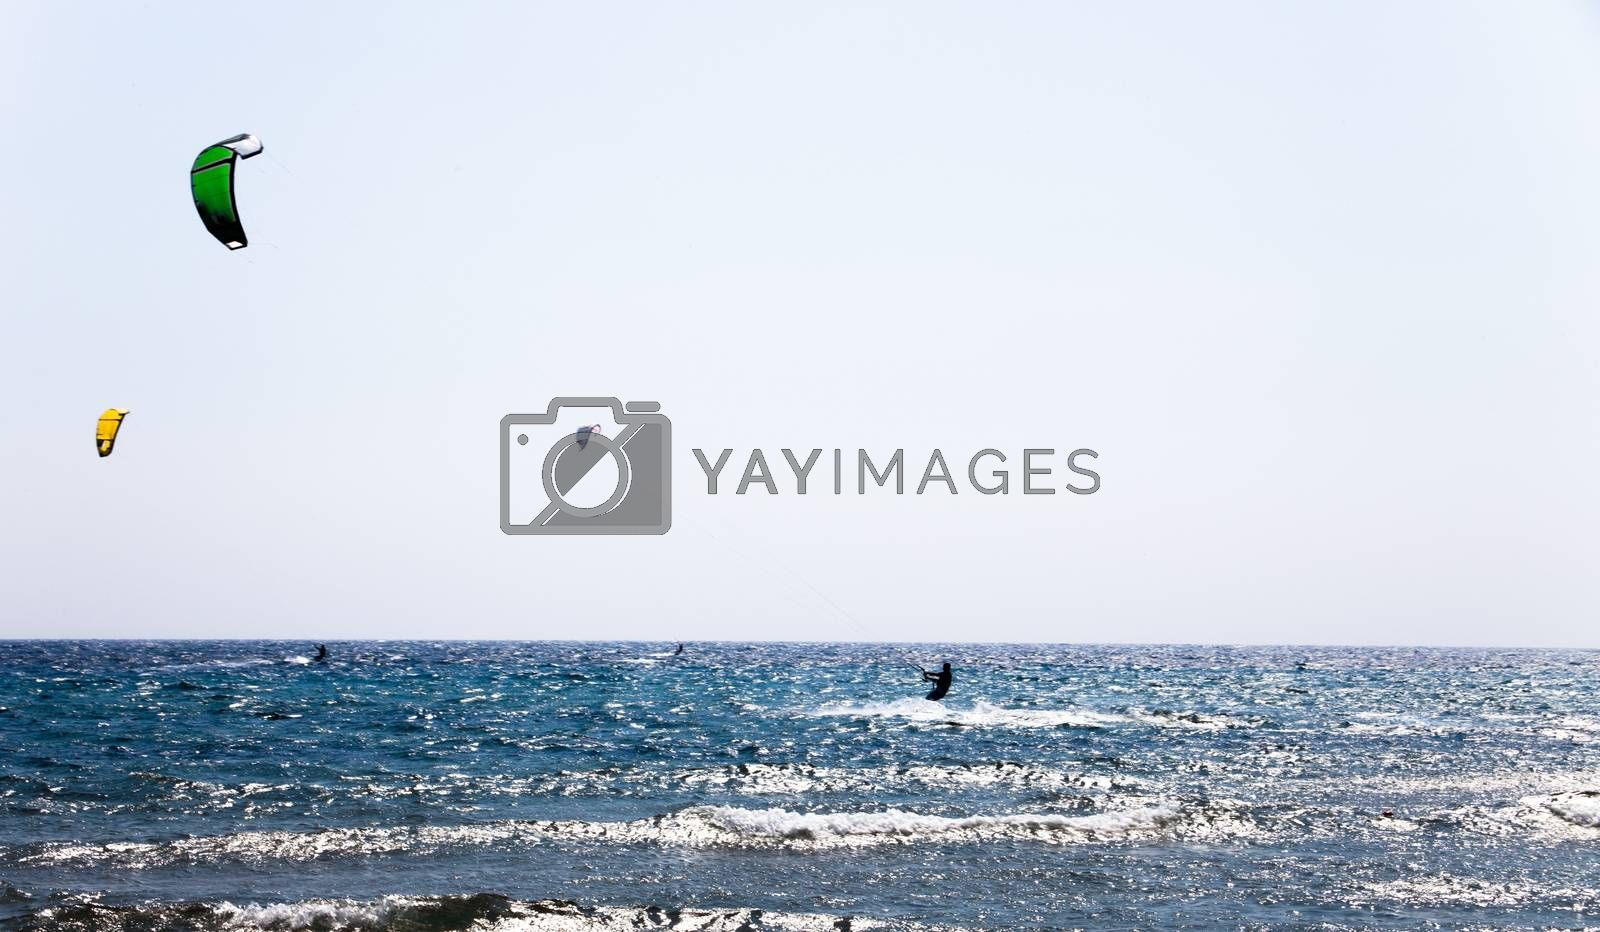 Sunny day on the blue sea with blue sky. Surfers with parachutes on the sea waves. Action sport with parachutes and surfing boards. Beautiful sunny day on the sea with waves.